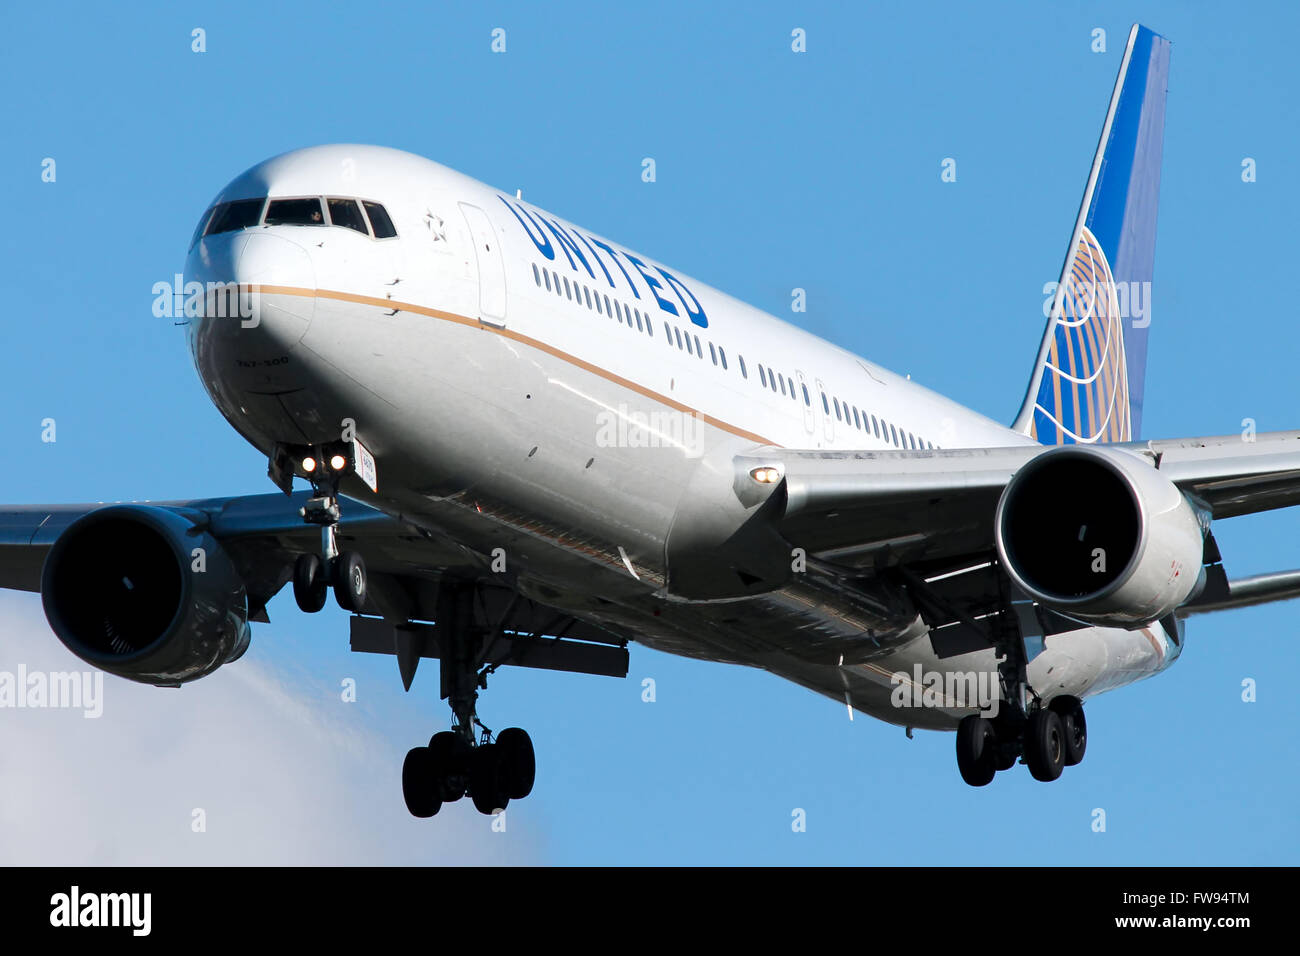 United Airlines Boeing 767-300 approaches runway 27L at London Heathrow airport. - Stock Image